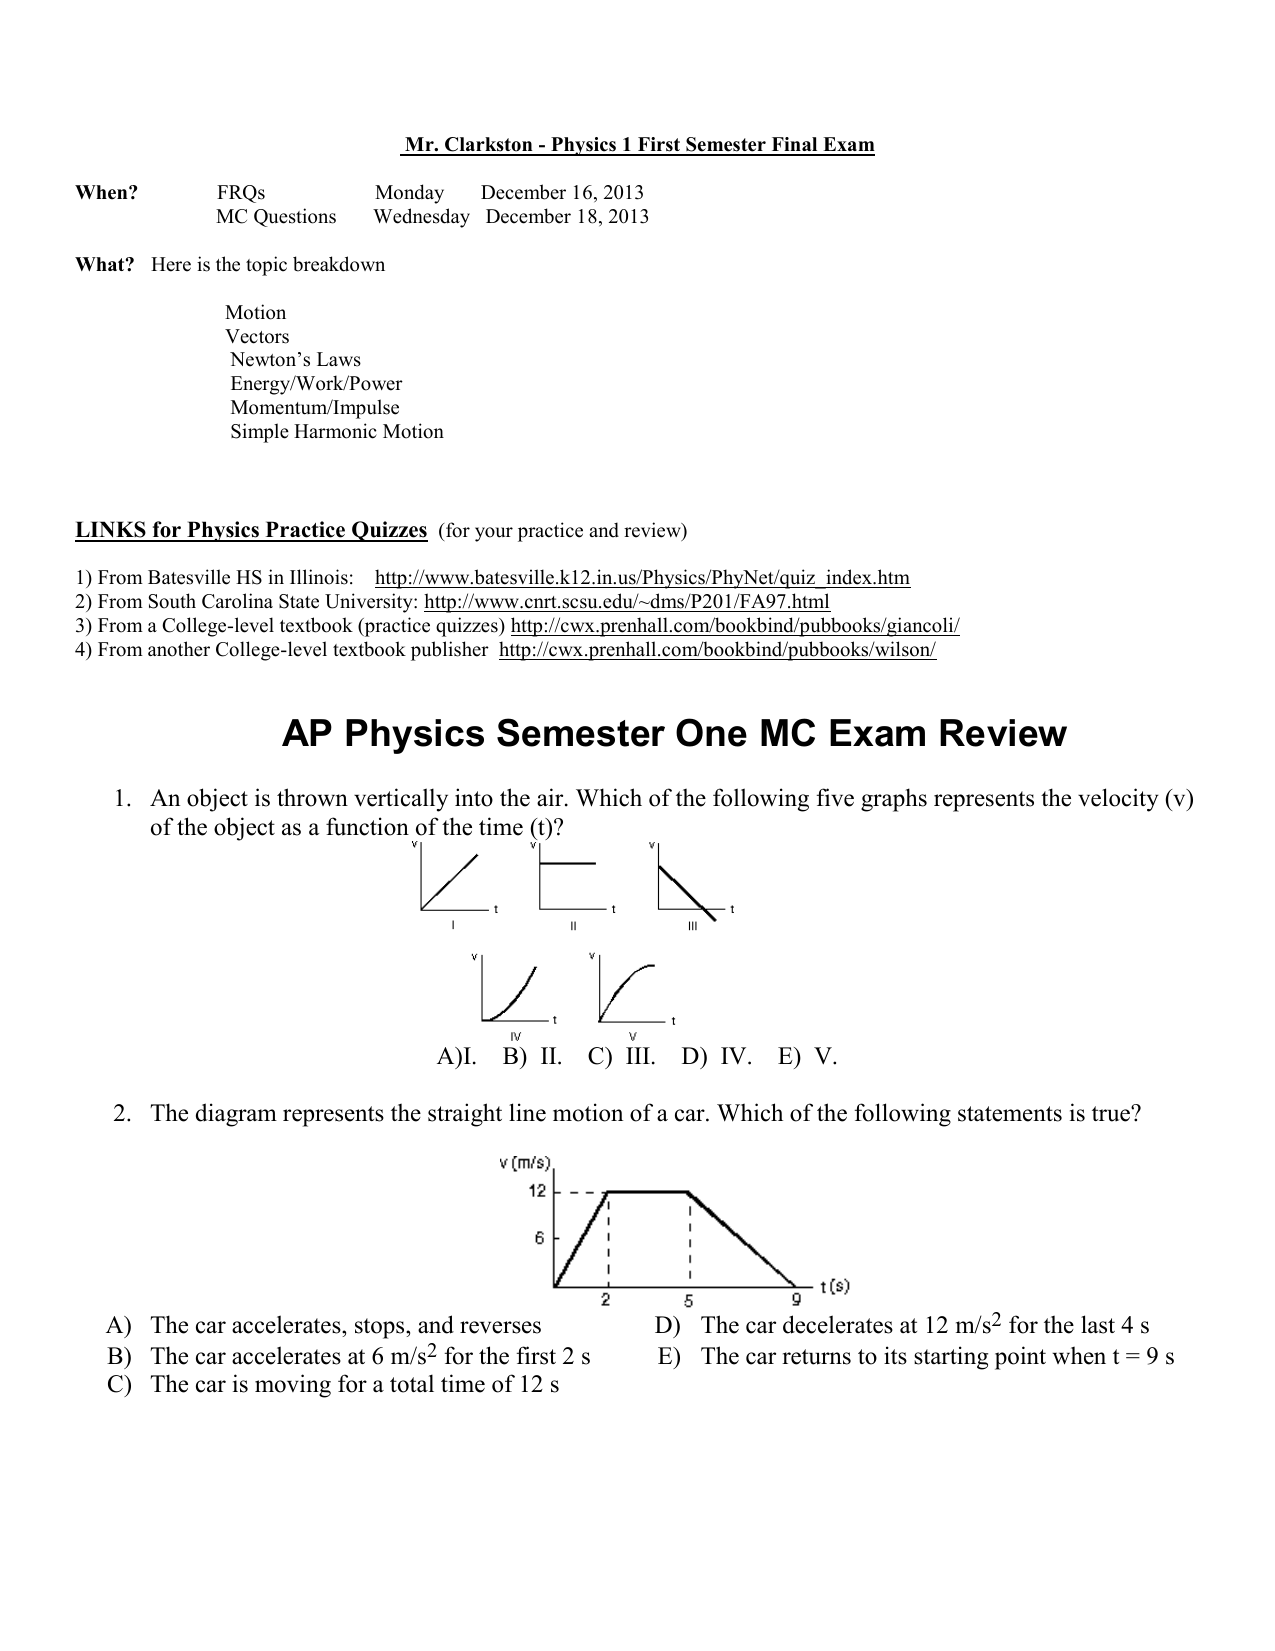 AP Physics Semester One Exam Review (Chapters 2